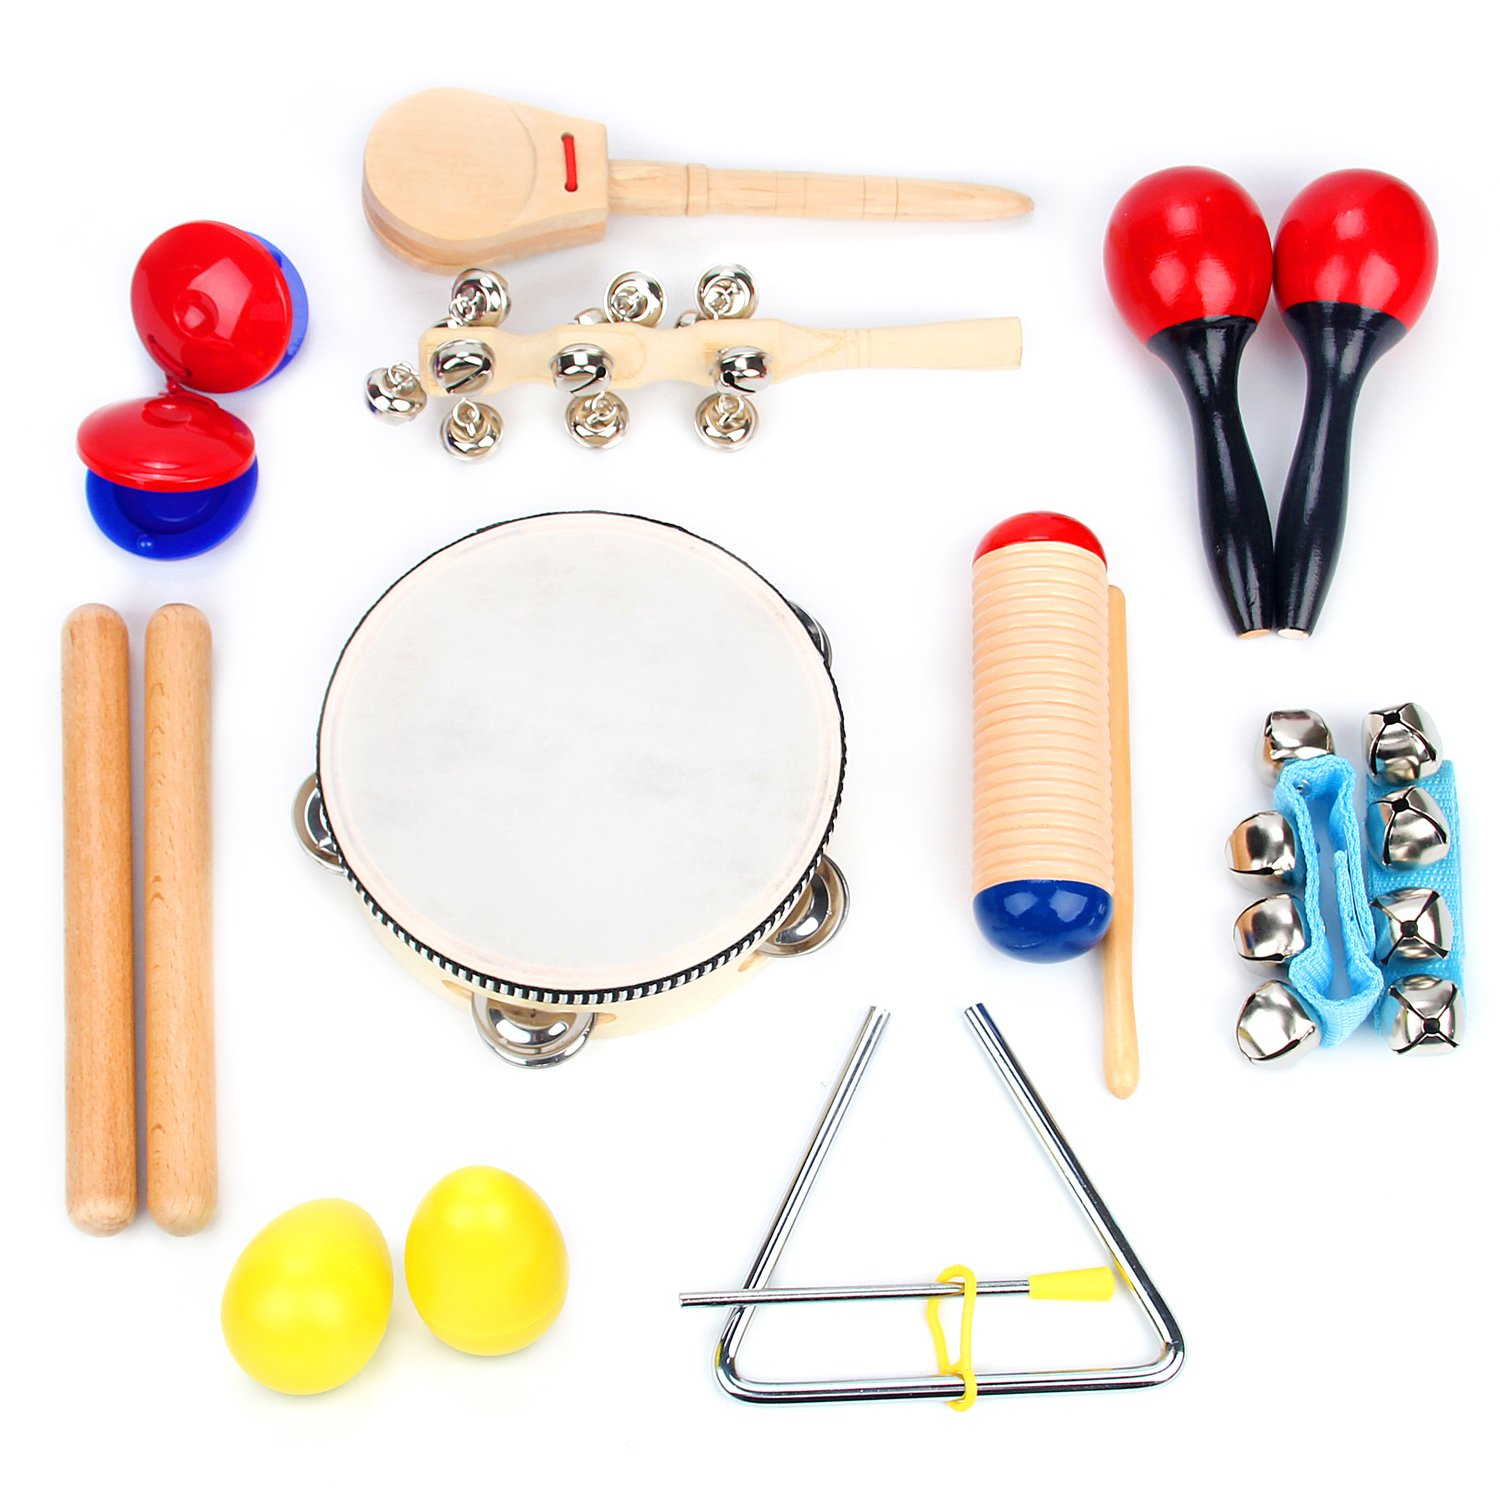 Boxiki kids Musical Instrument Set 18 PCS | Rhythm & Music Education Toys for Kids | Clave Sticks, Shakers, Tambourine, Wrist Bells & Maracas for Kids | Natural Toys with Carrying Case by Boxiki kids